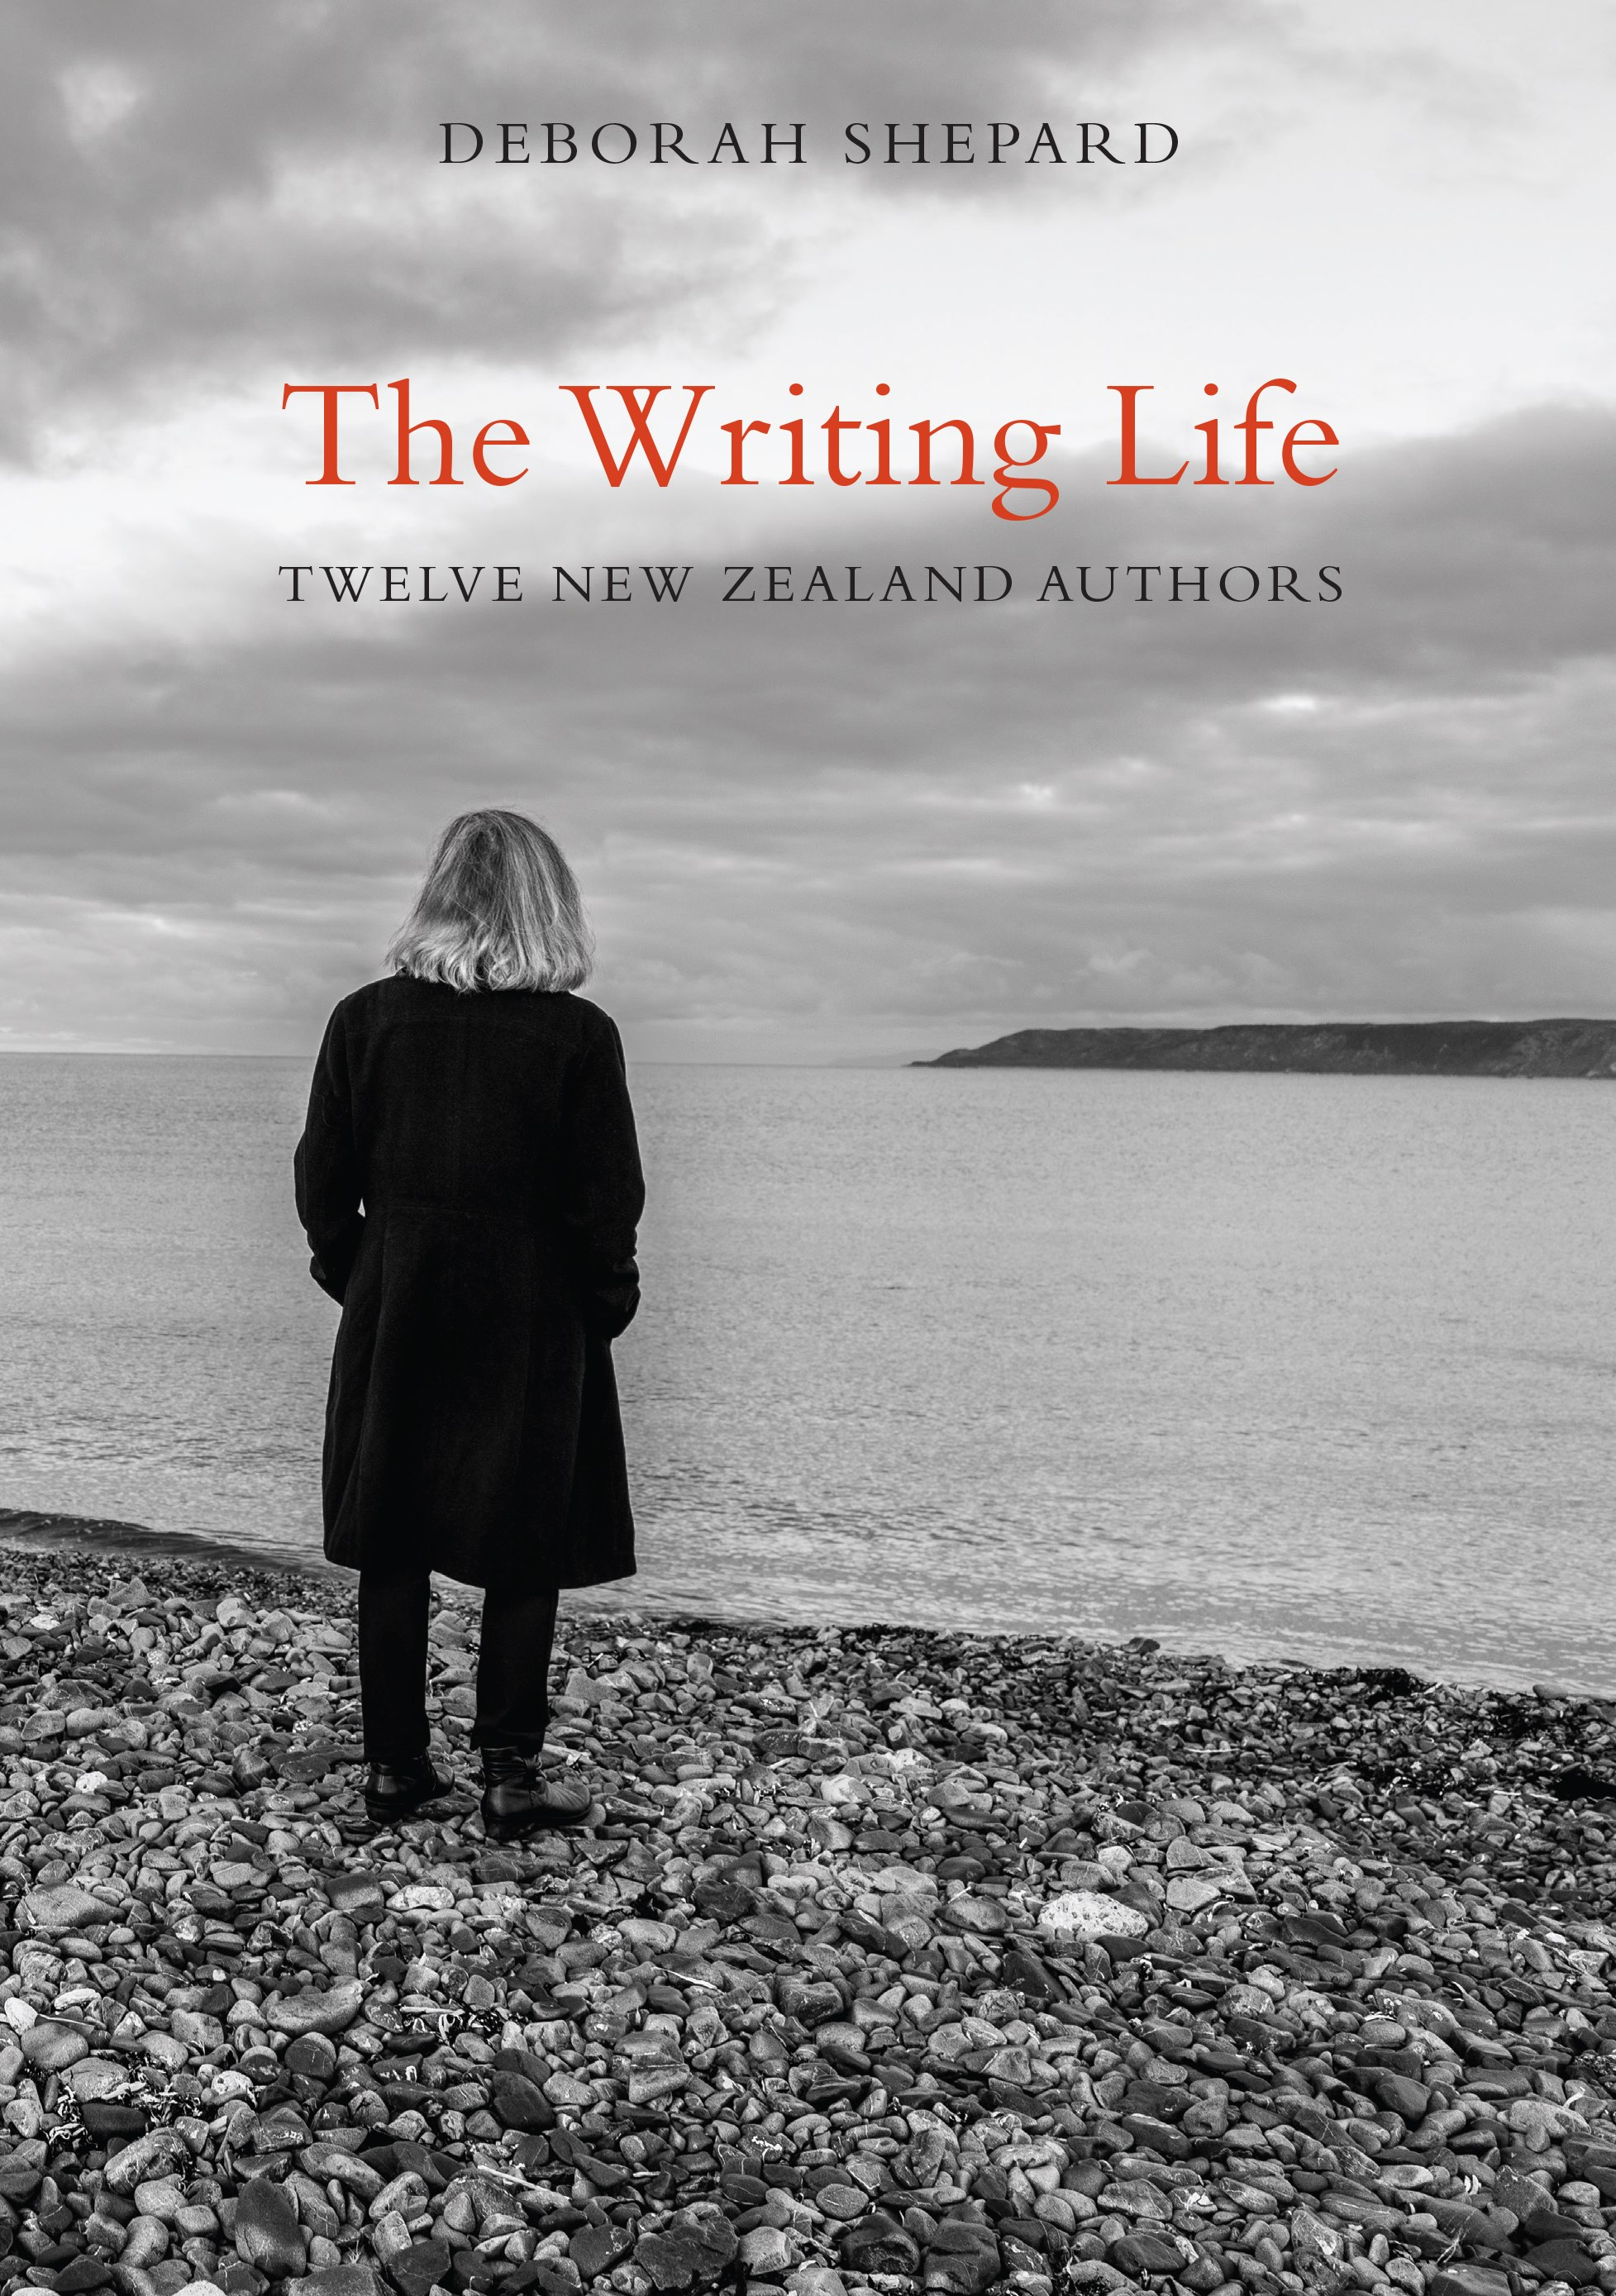 book cover for Tessa Duder's speech from The Writing Life launch